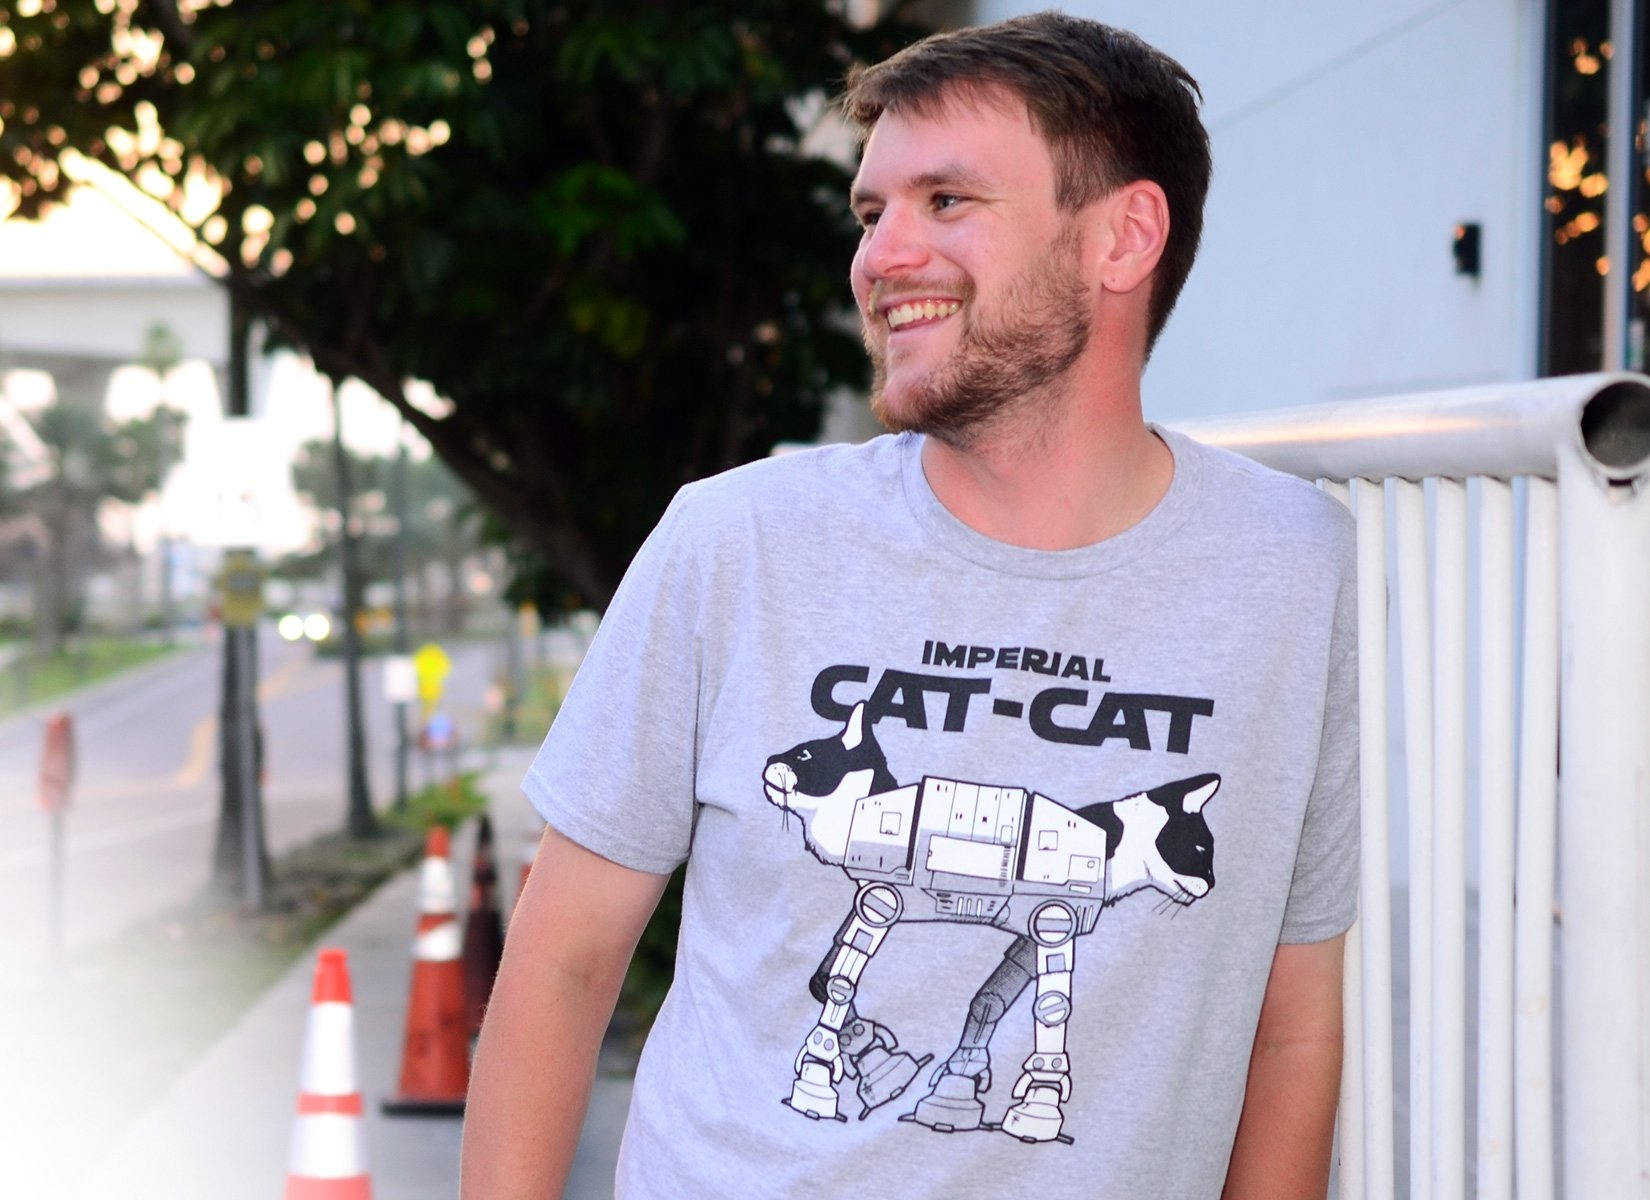 Cat-Cat on Mens T-Shirt